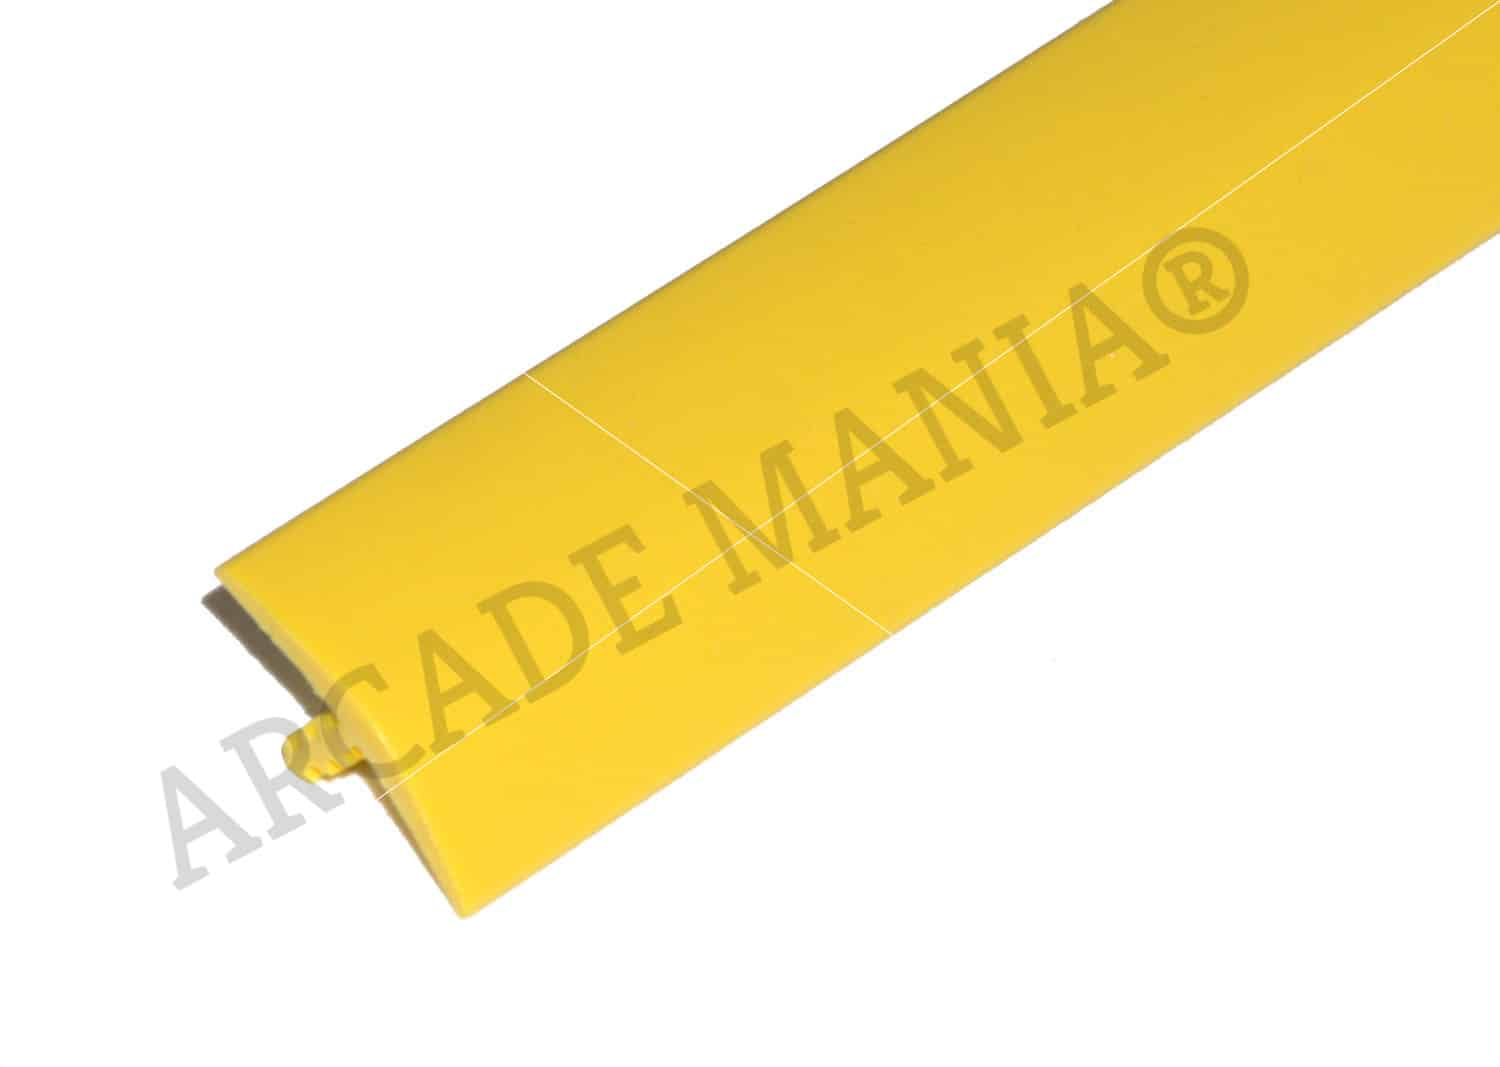 Yellow 3 Quarter Inch T-Molding 19.5mm Trim Image